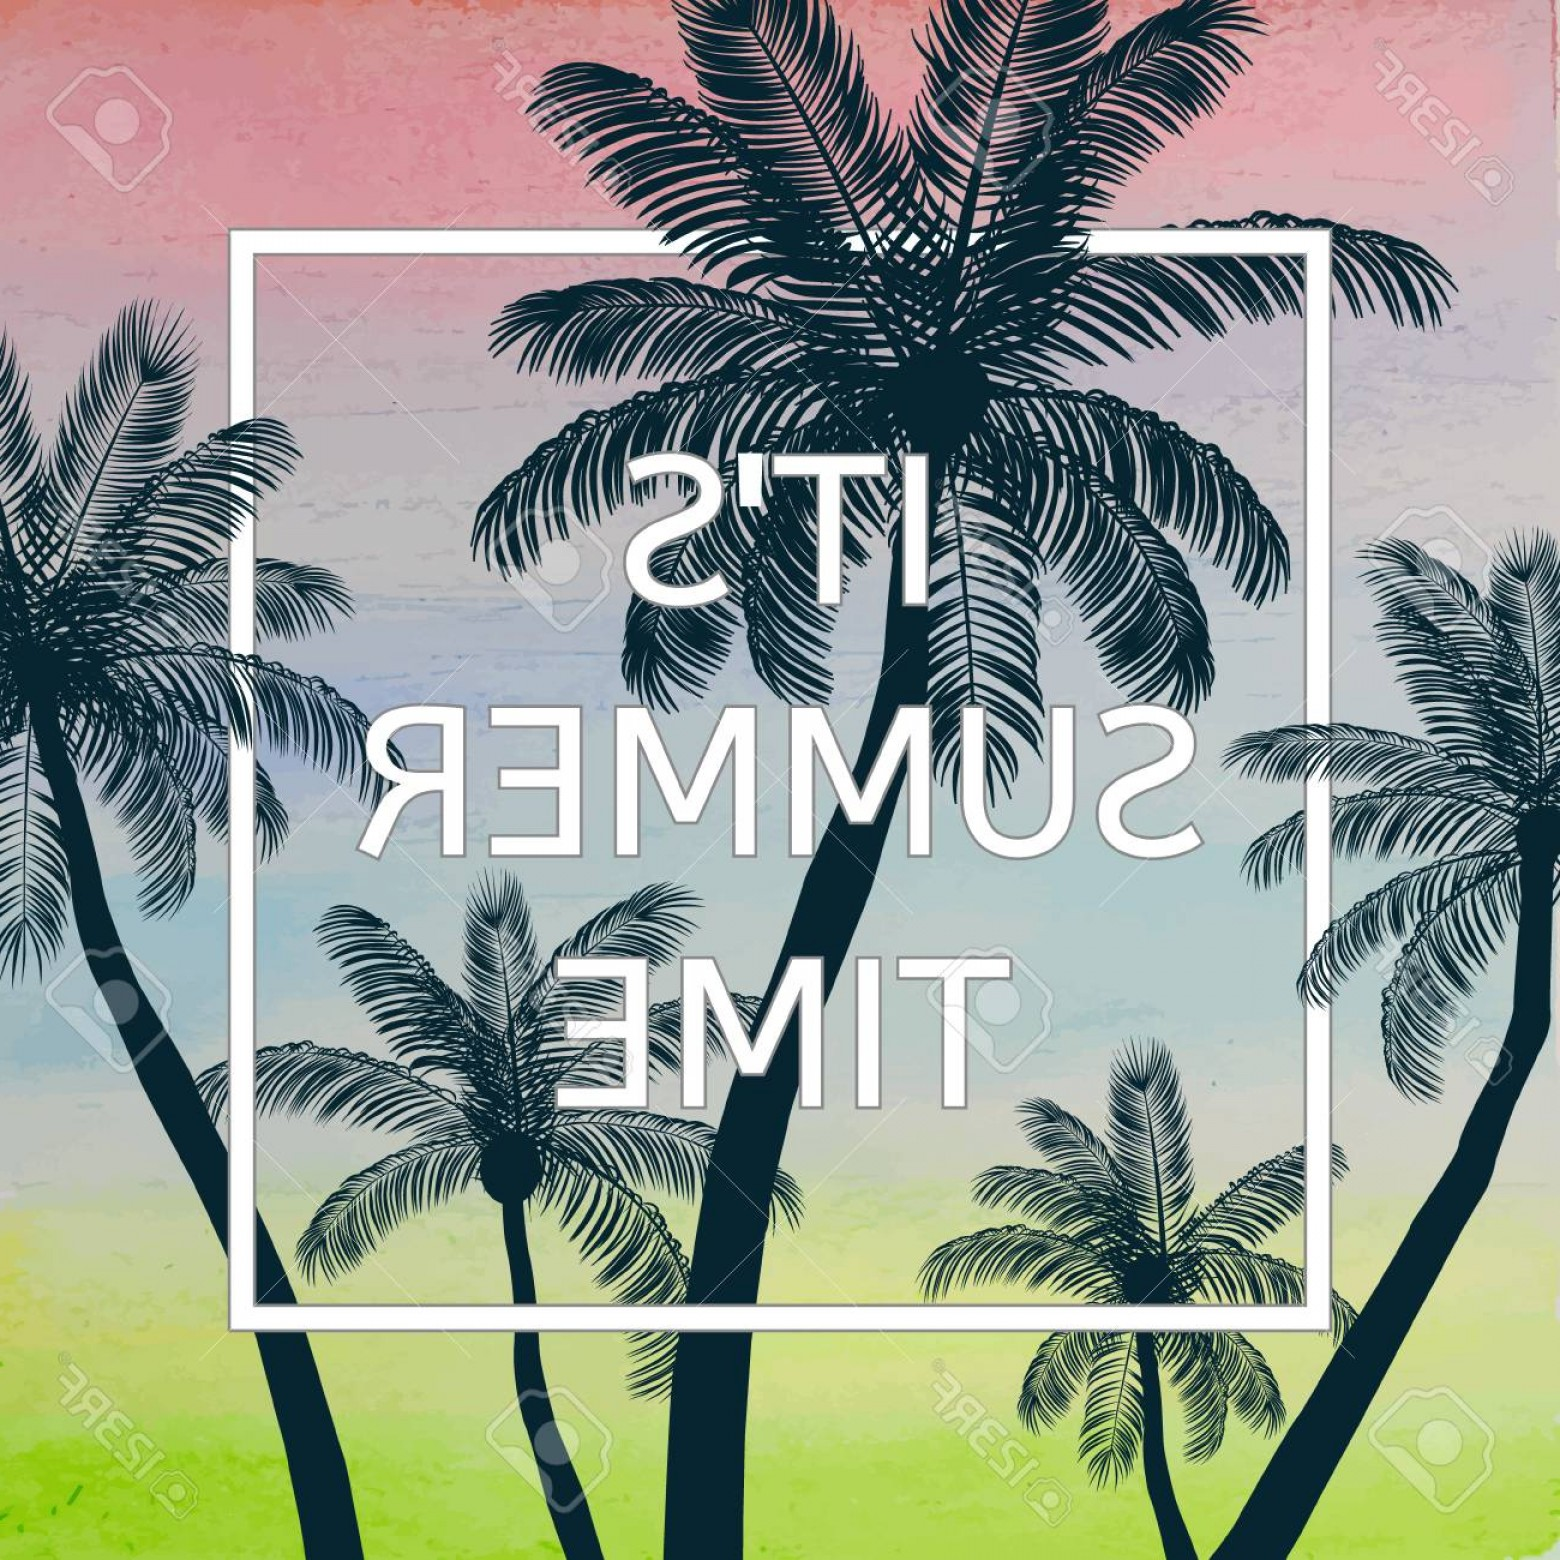 Watercolor Palm Tree Vector: Photostock Vector Handmade Poster On Watercolor Background With Palm Trees Vector Illustration